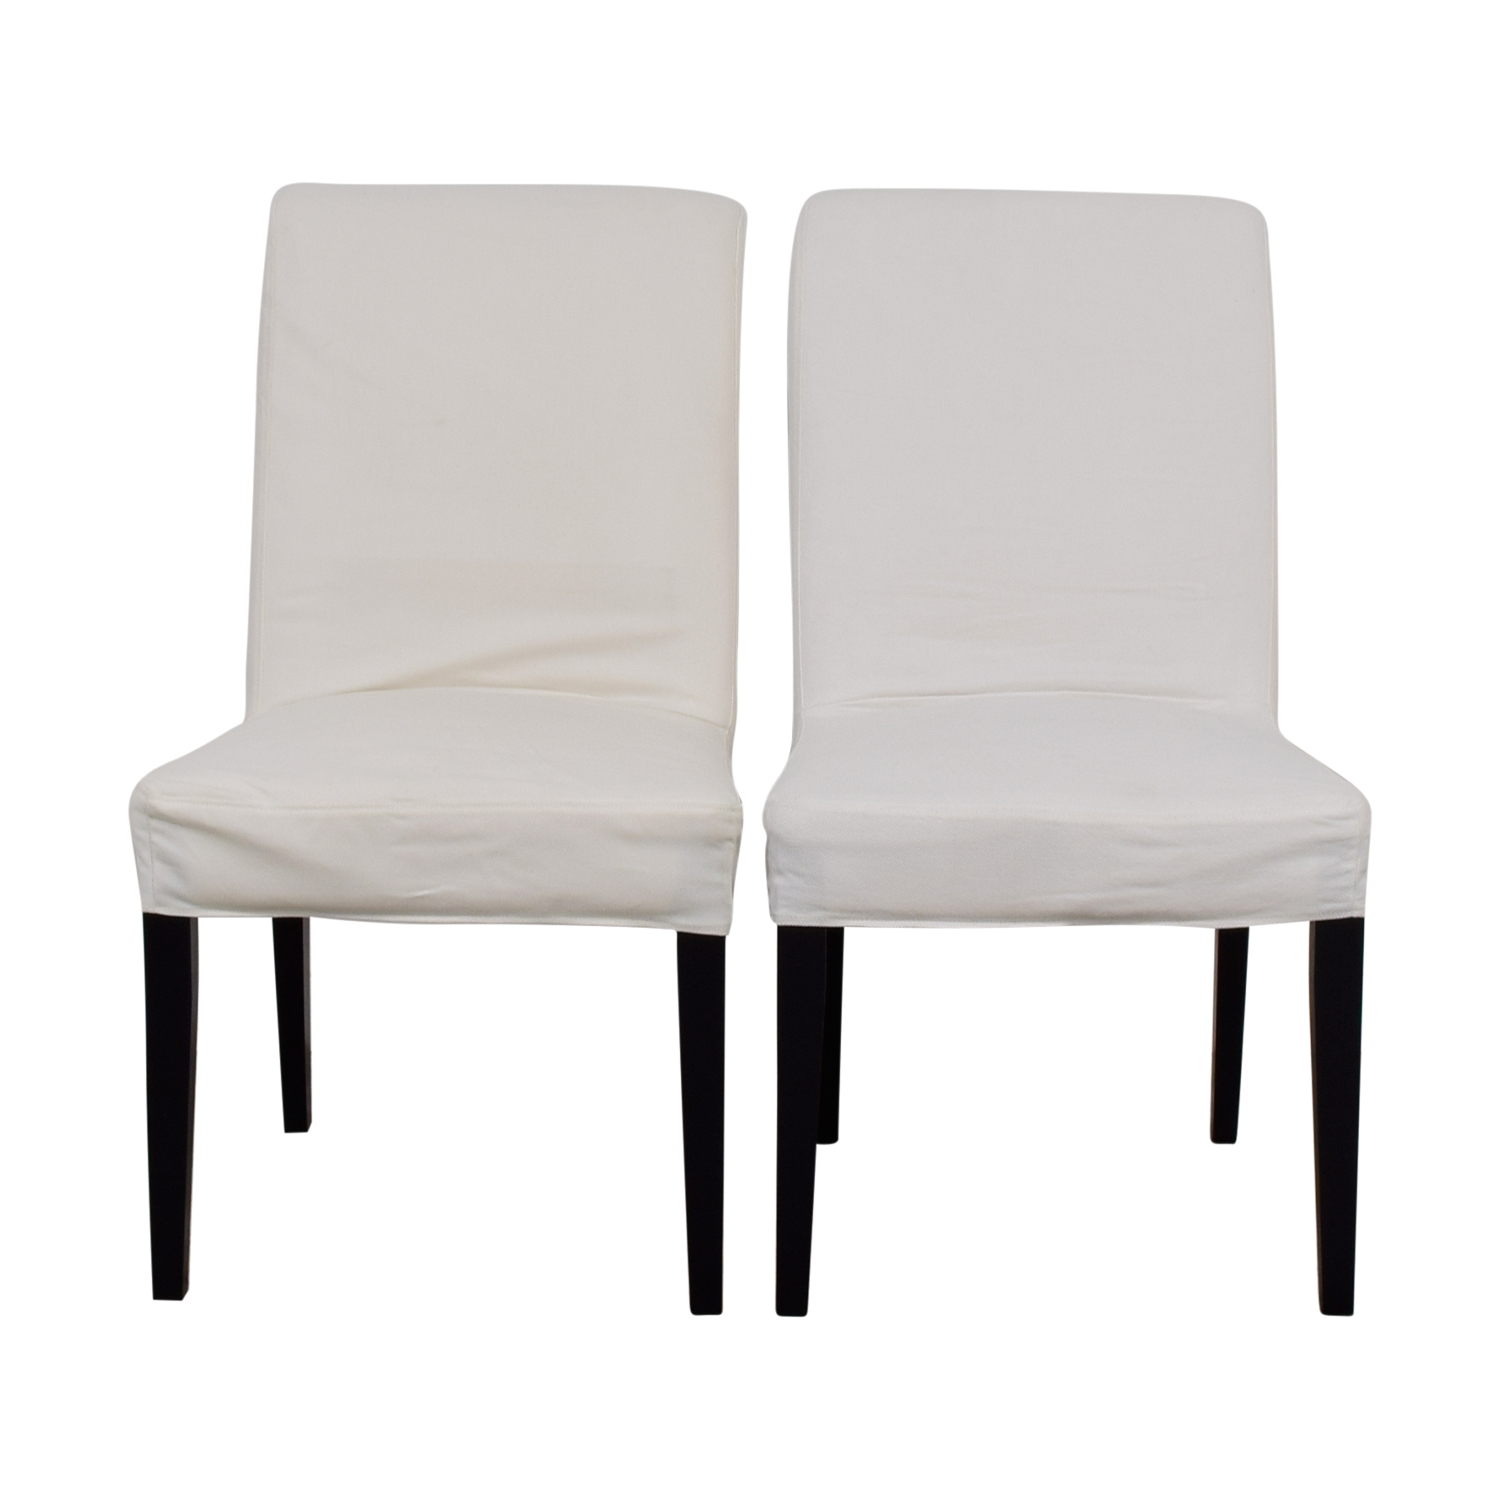 Outstanding 88 Off Ikea Ikea Hendriksdal Dining Chairs Chairs Spiritservingveterans Wood Chair Design Ideas Spiritservingveteransorg